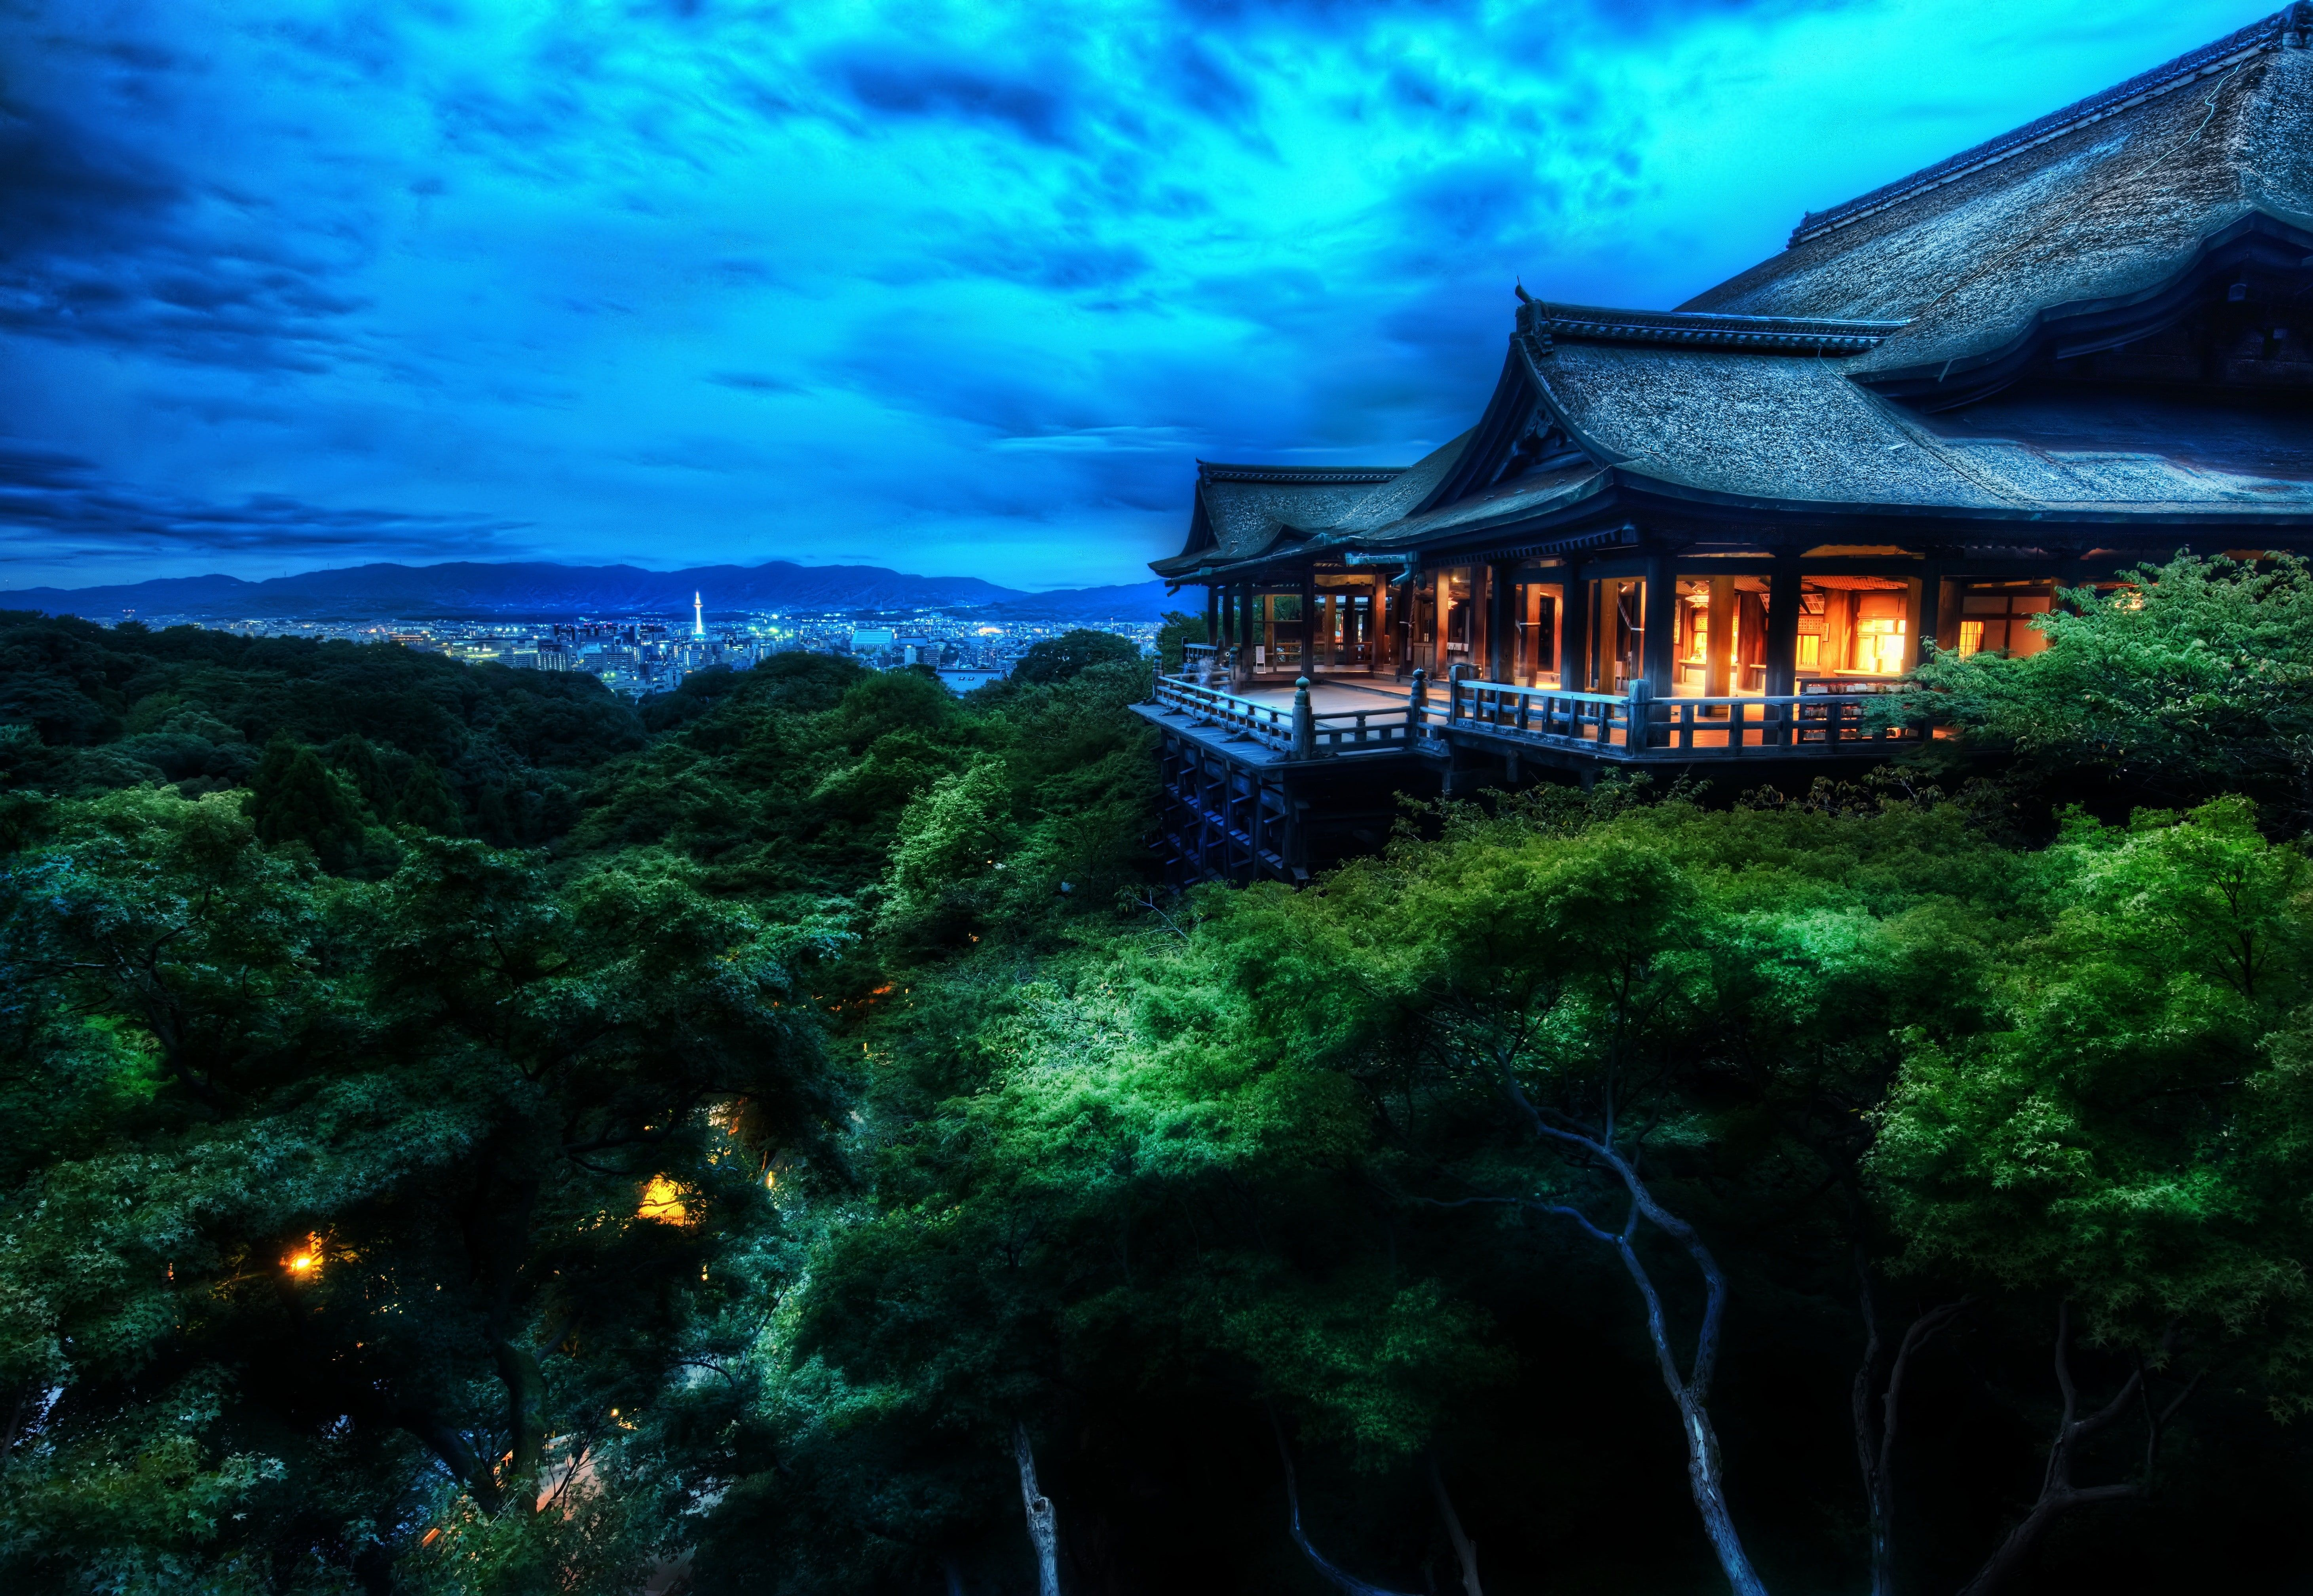 Nature Landscape Temple Kyoto Japan 5k Wallpaper